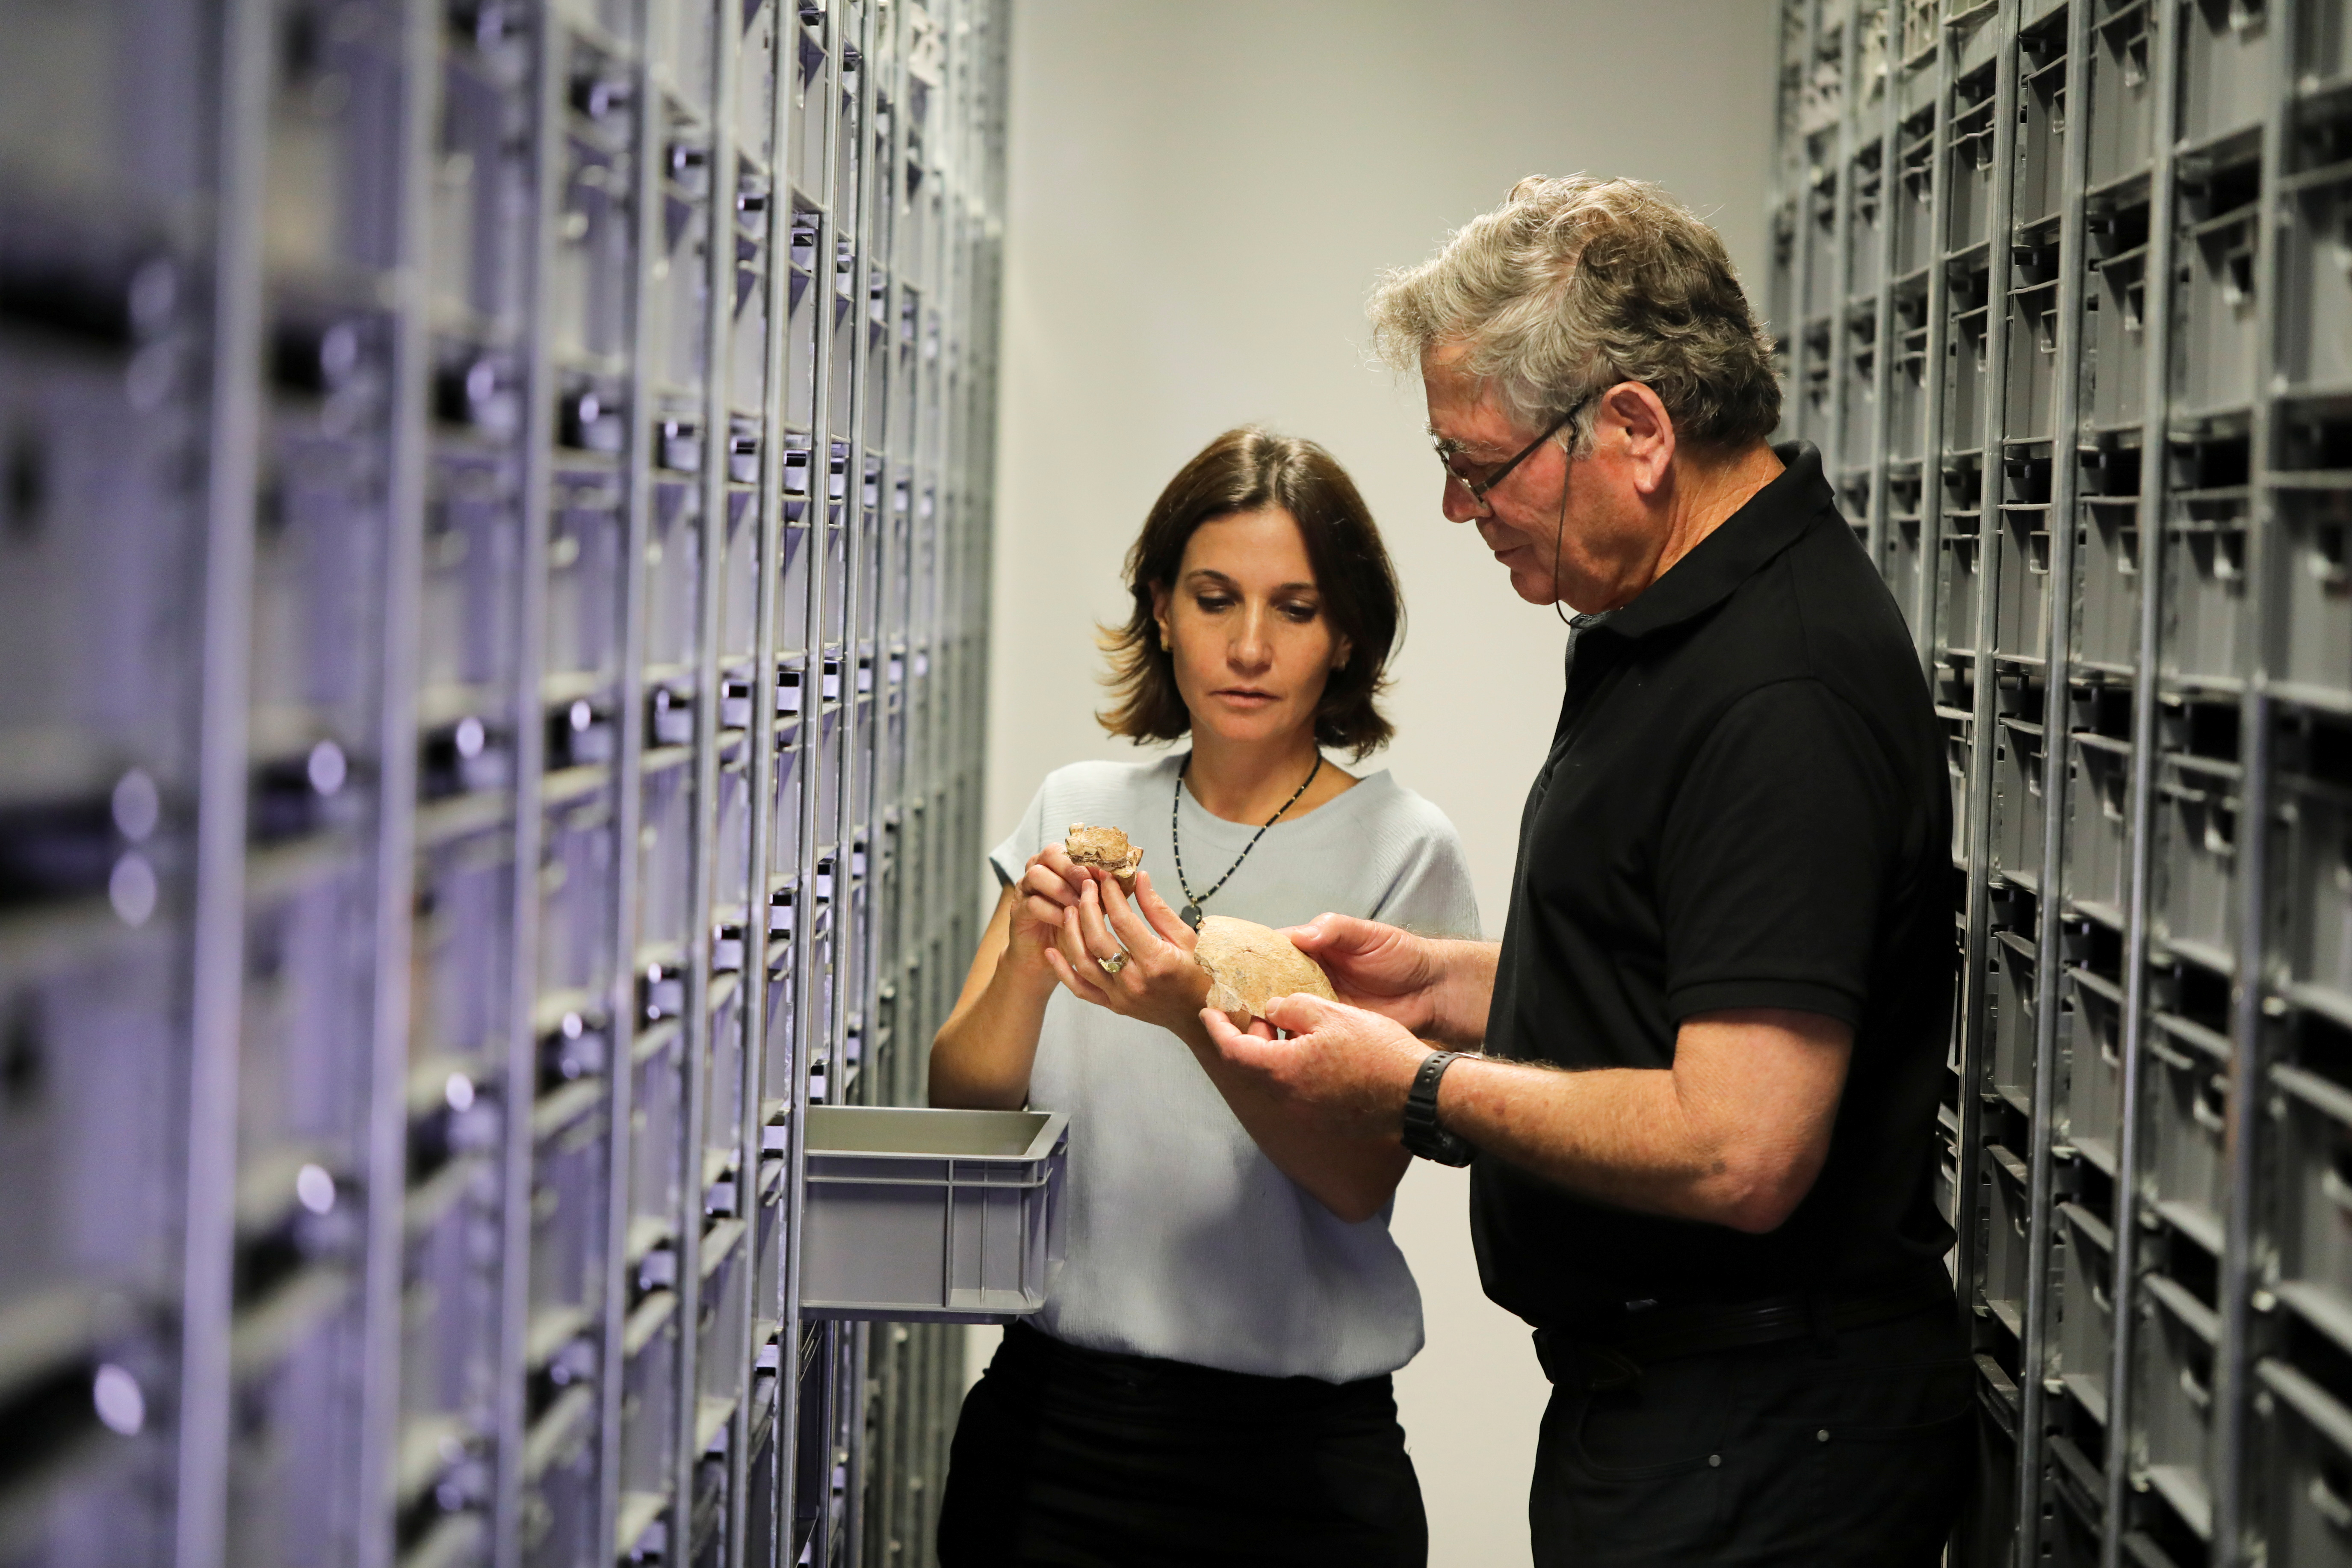 Tel Aviv University Professor Israel Hershkovitz and Doctor Hila May from Tel Aviv University, hold what scientists say are two pieces of fossilised bone of a previously unknown kind of early human discovered at the Nesher Ramla site in central Israel, during an interview with Reuters at The Steinhardt Museum of Natural History in Tel Aviv, Israel June 23, 2021. Picture taken June 23, 2021. REUTERS/Ammar Awad